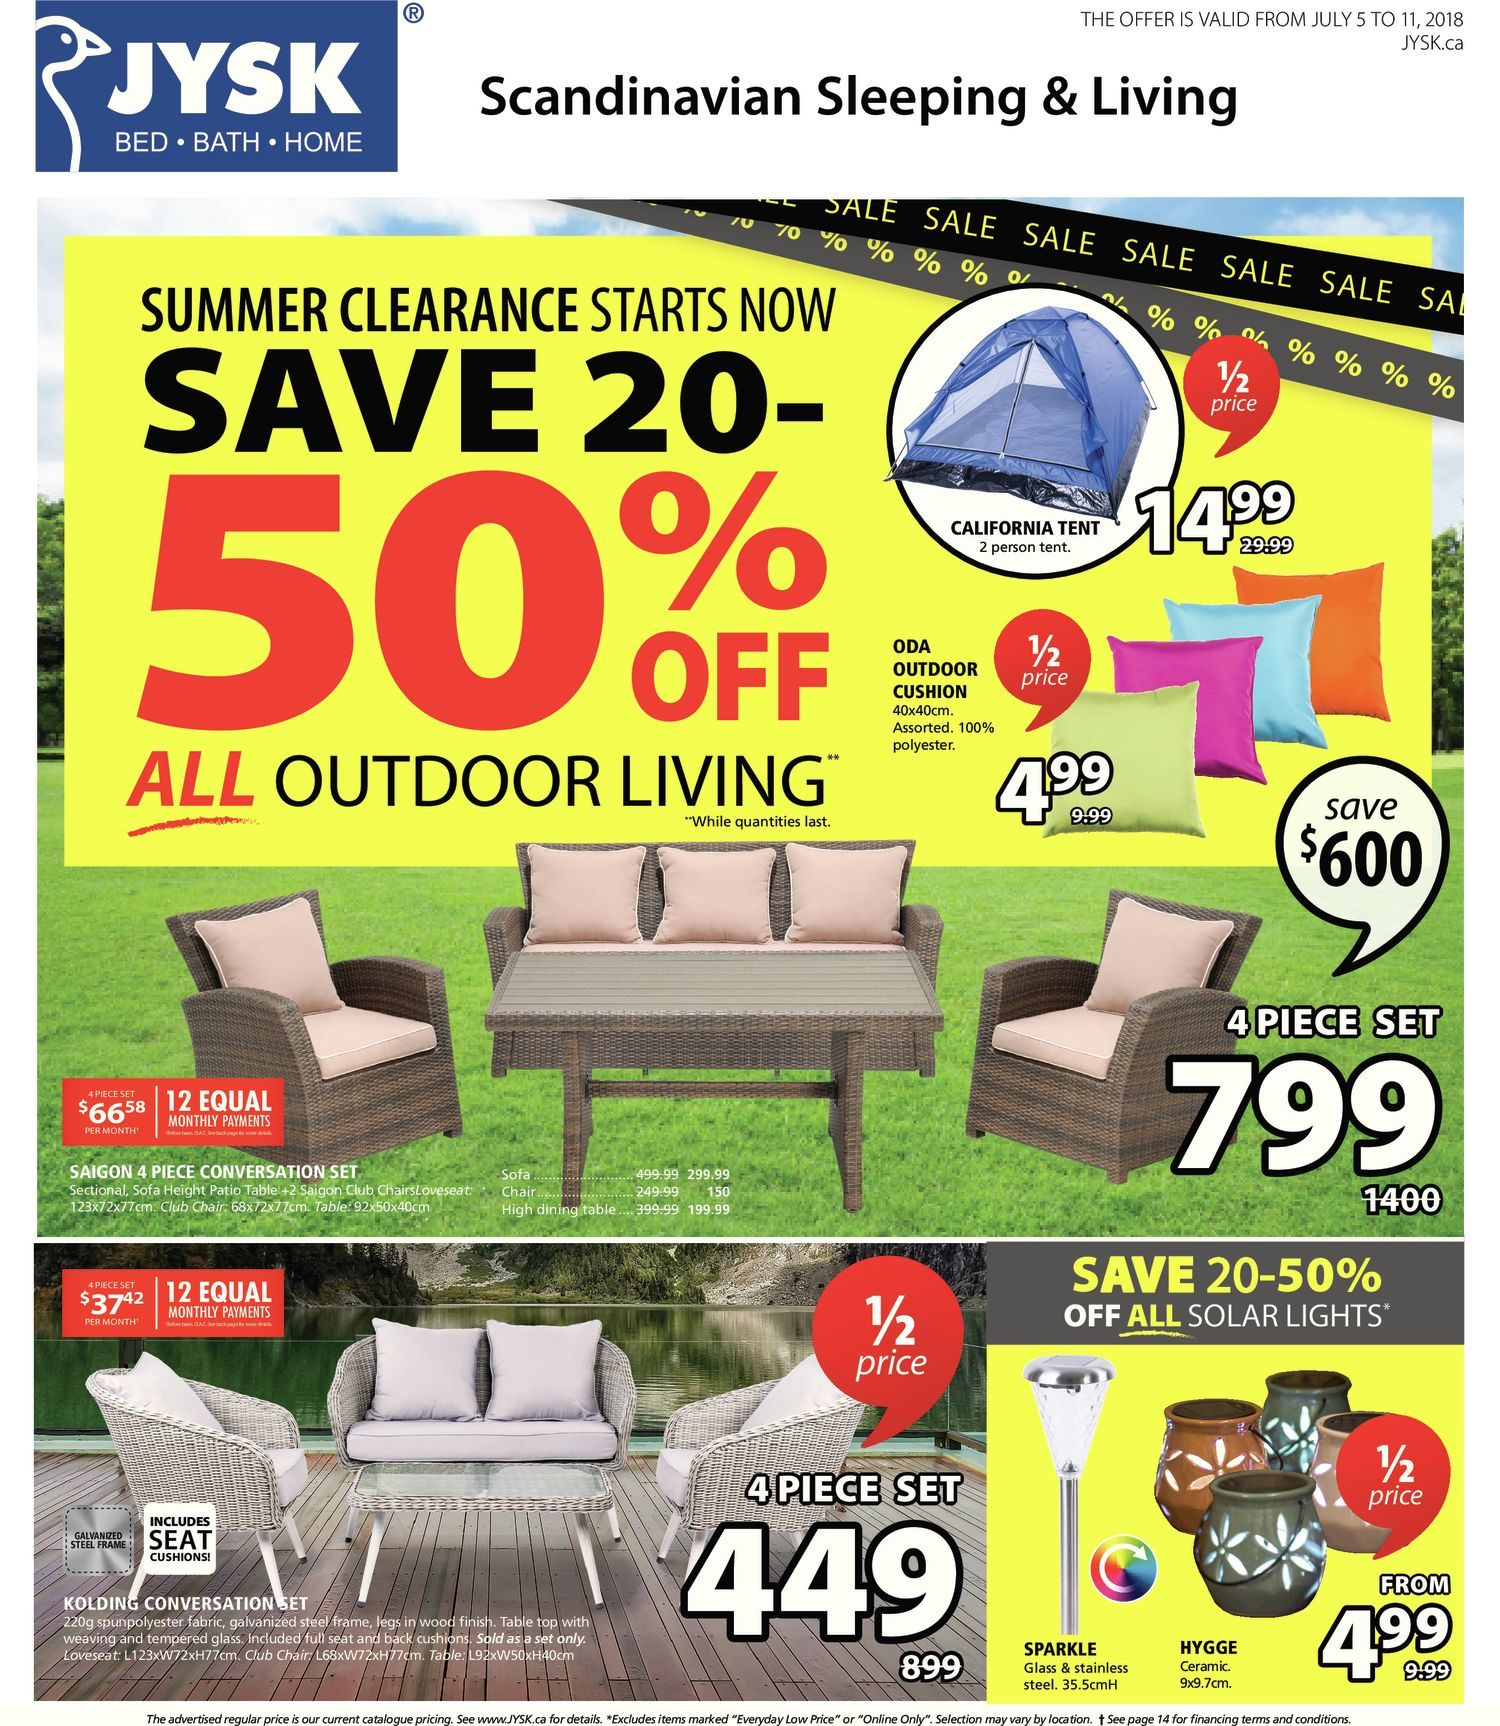 hanging egg chair jysk round office tables and chairs weekly flyer summer clearance starts now jul 5